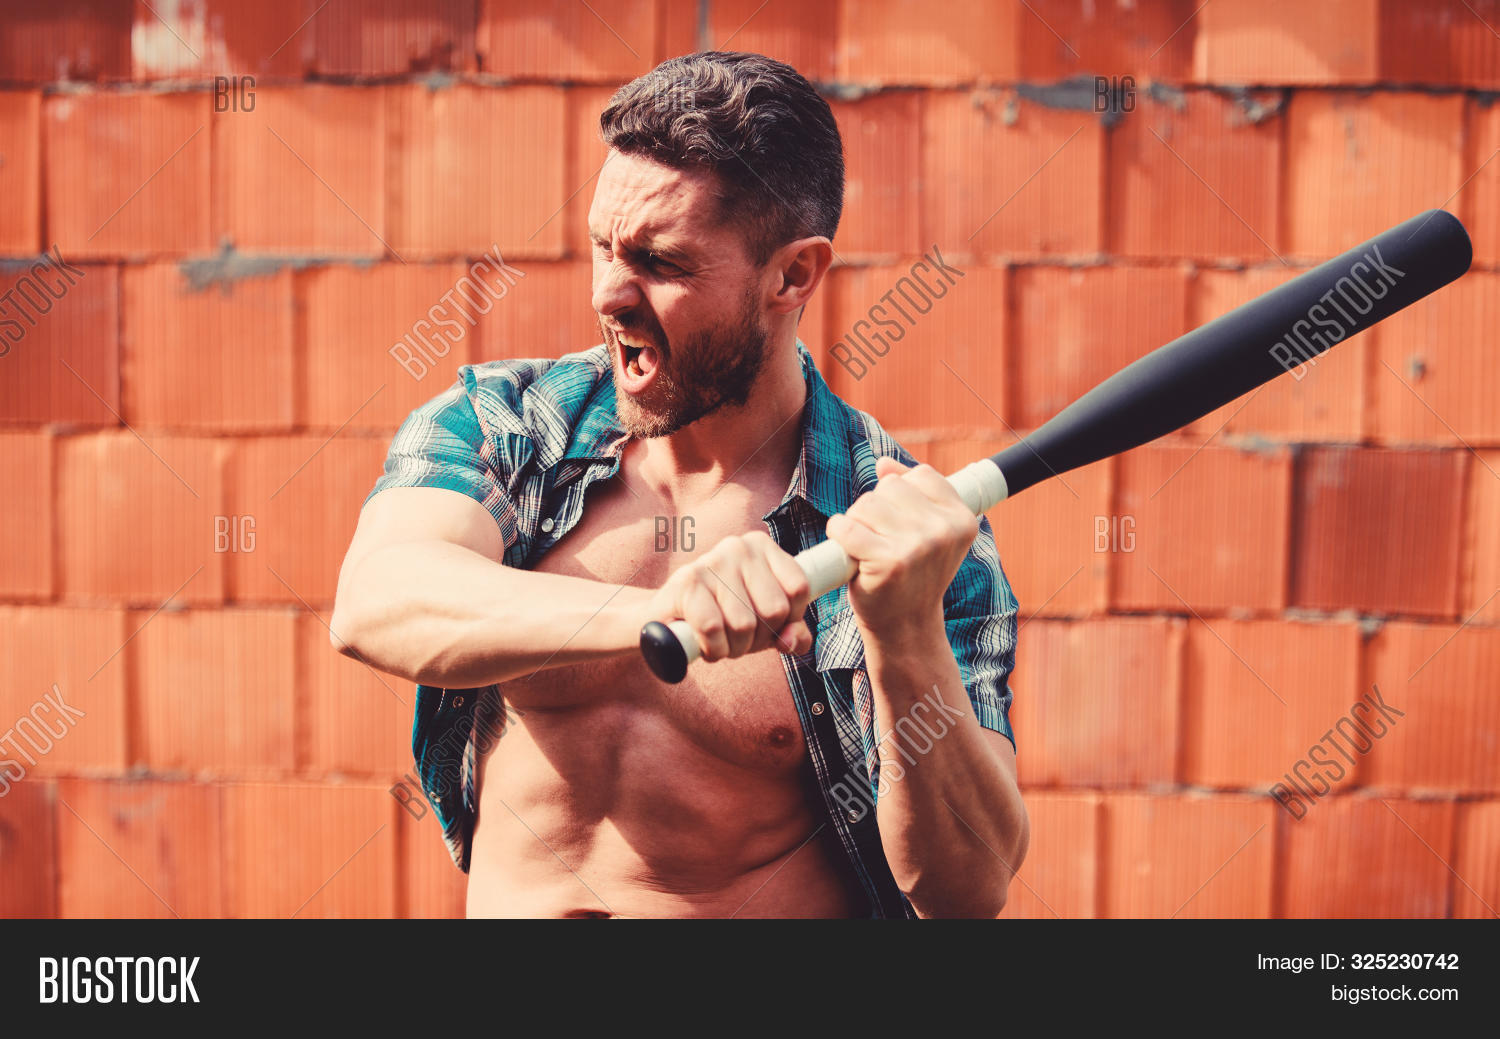 Feel my strength. Man unshaven face muscular torso hold black baseball bat. Strong temper. Confident his strength. Bully guy carry cudgel brick wall background. Power and strength. Attack concept